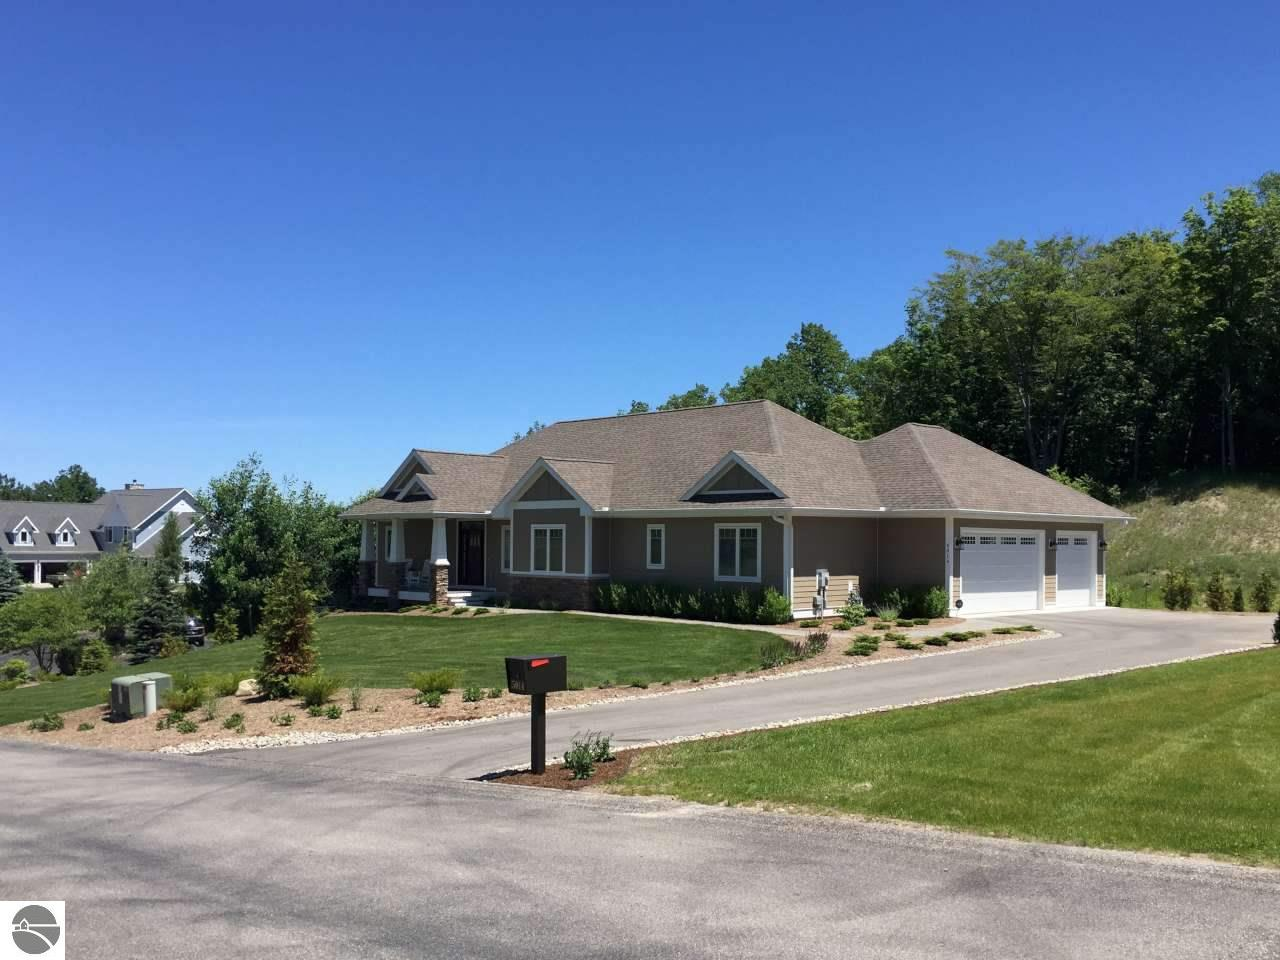 5014 Grayhawk Bvd, Traverse City, GrayHawk, house, real estate, sold by Oltersdorf Realty LLC (2).JPG